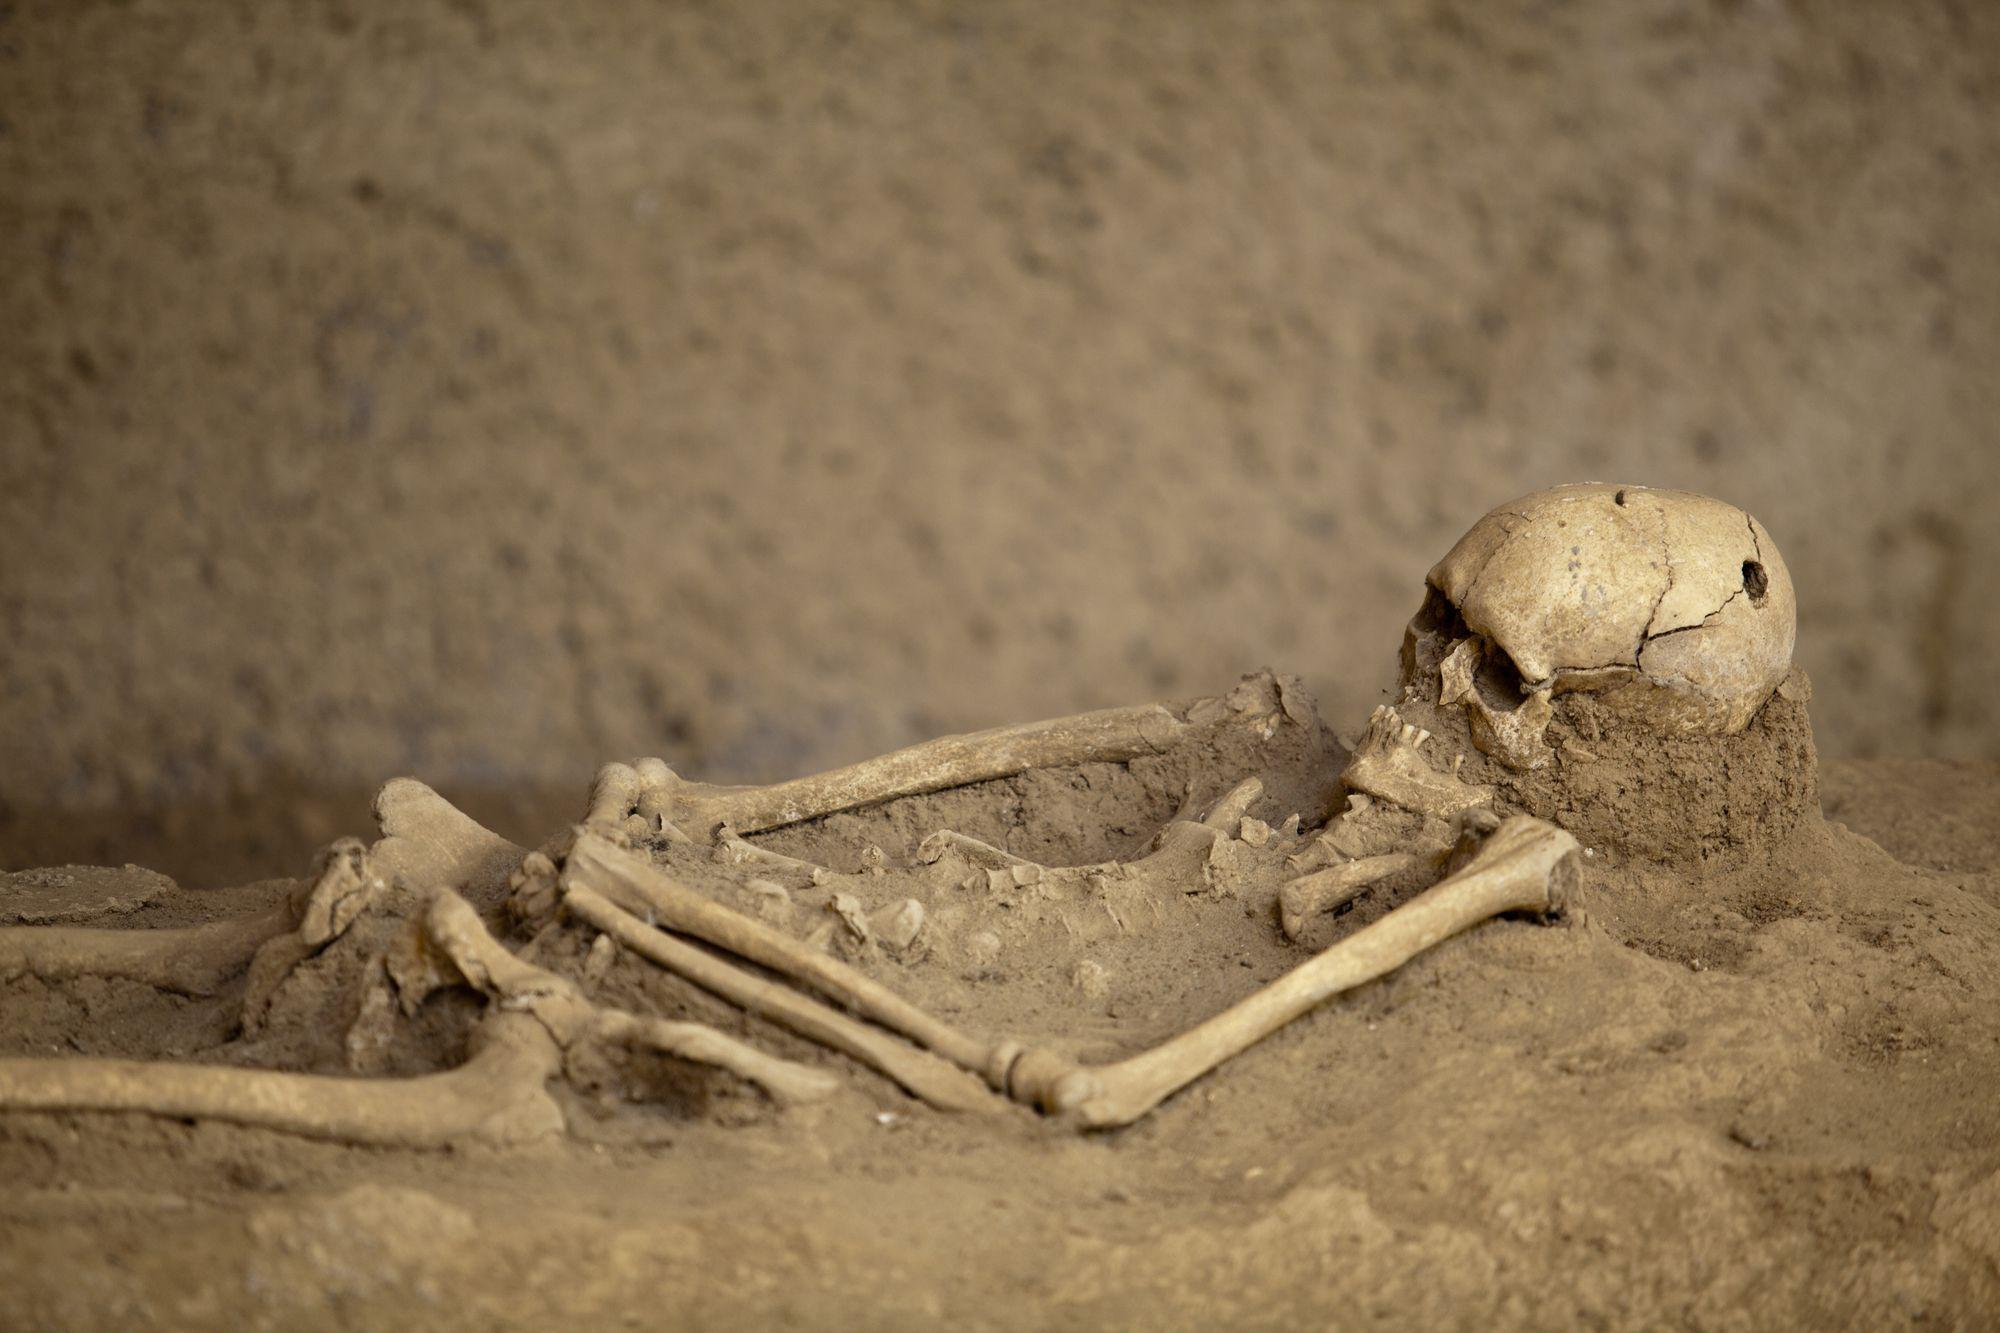 Human remains are just part of the evidence we have for where humanity originated